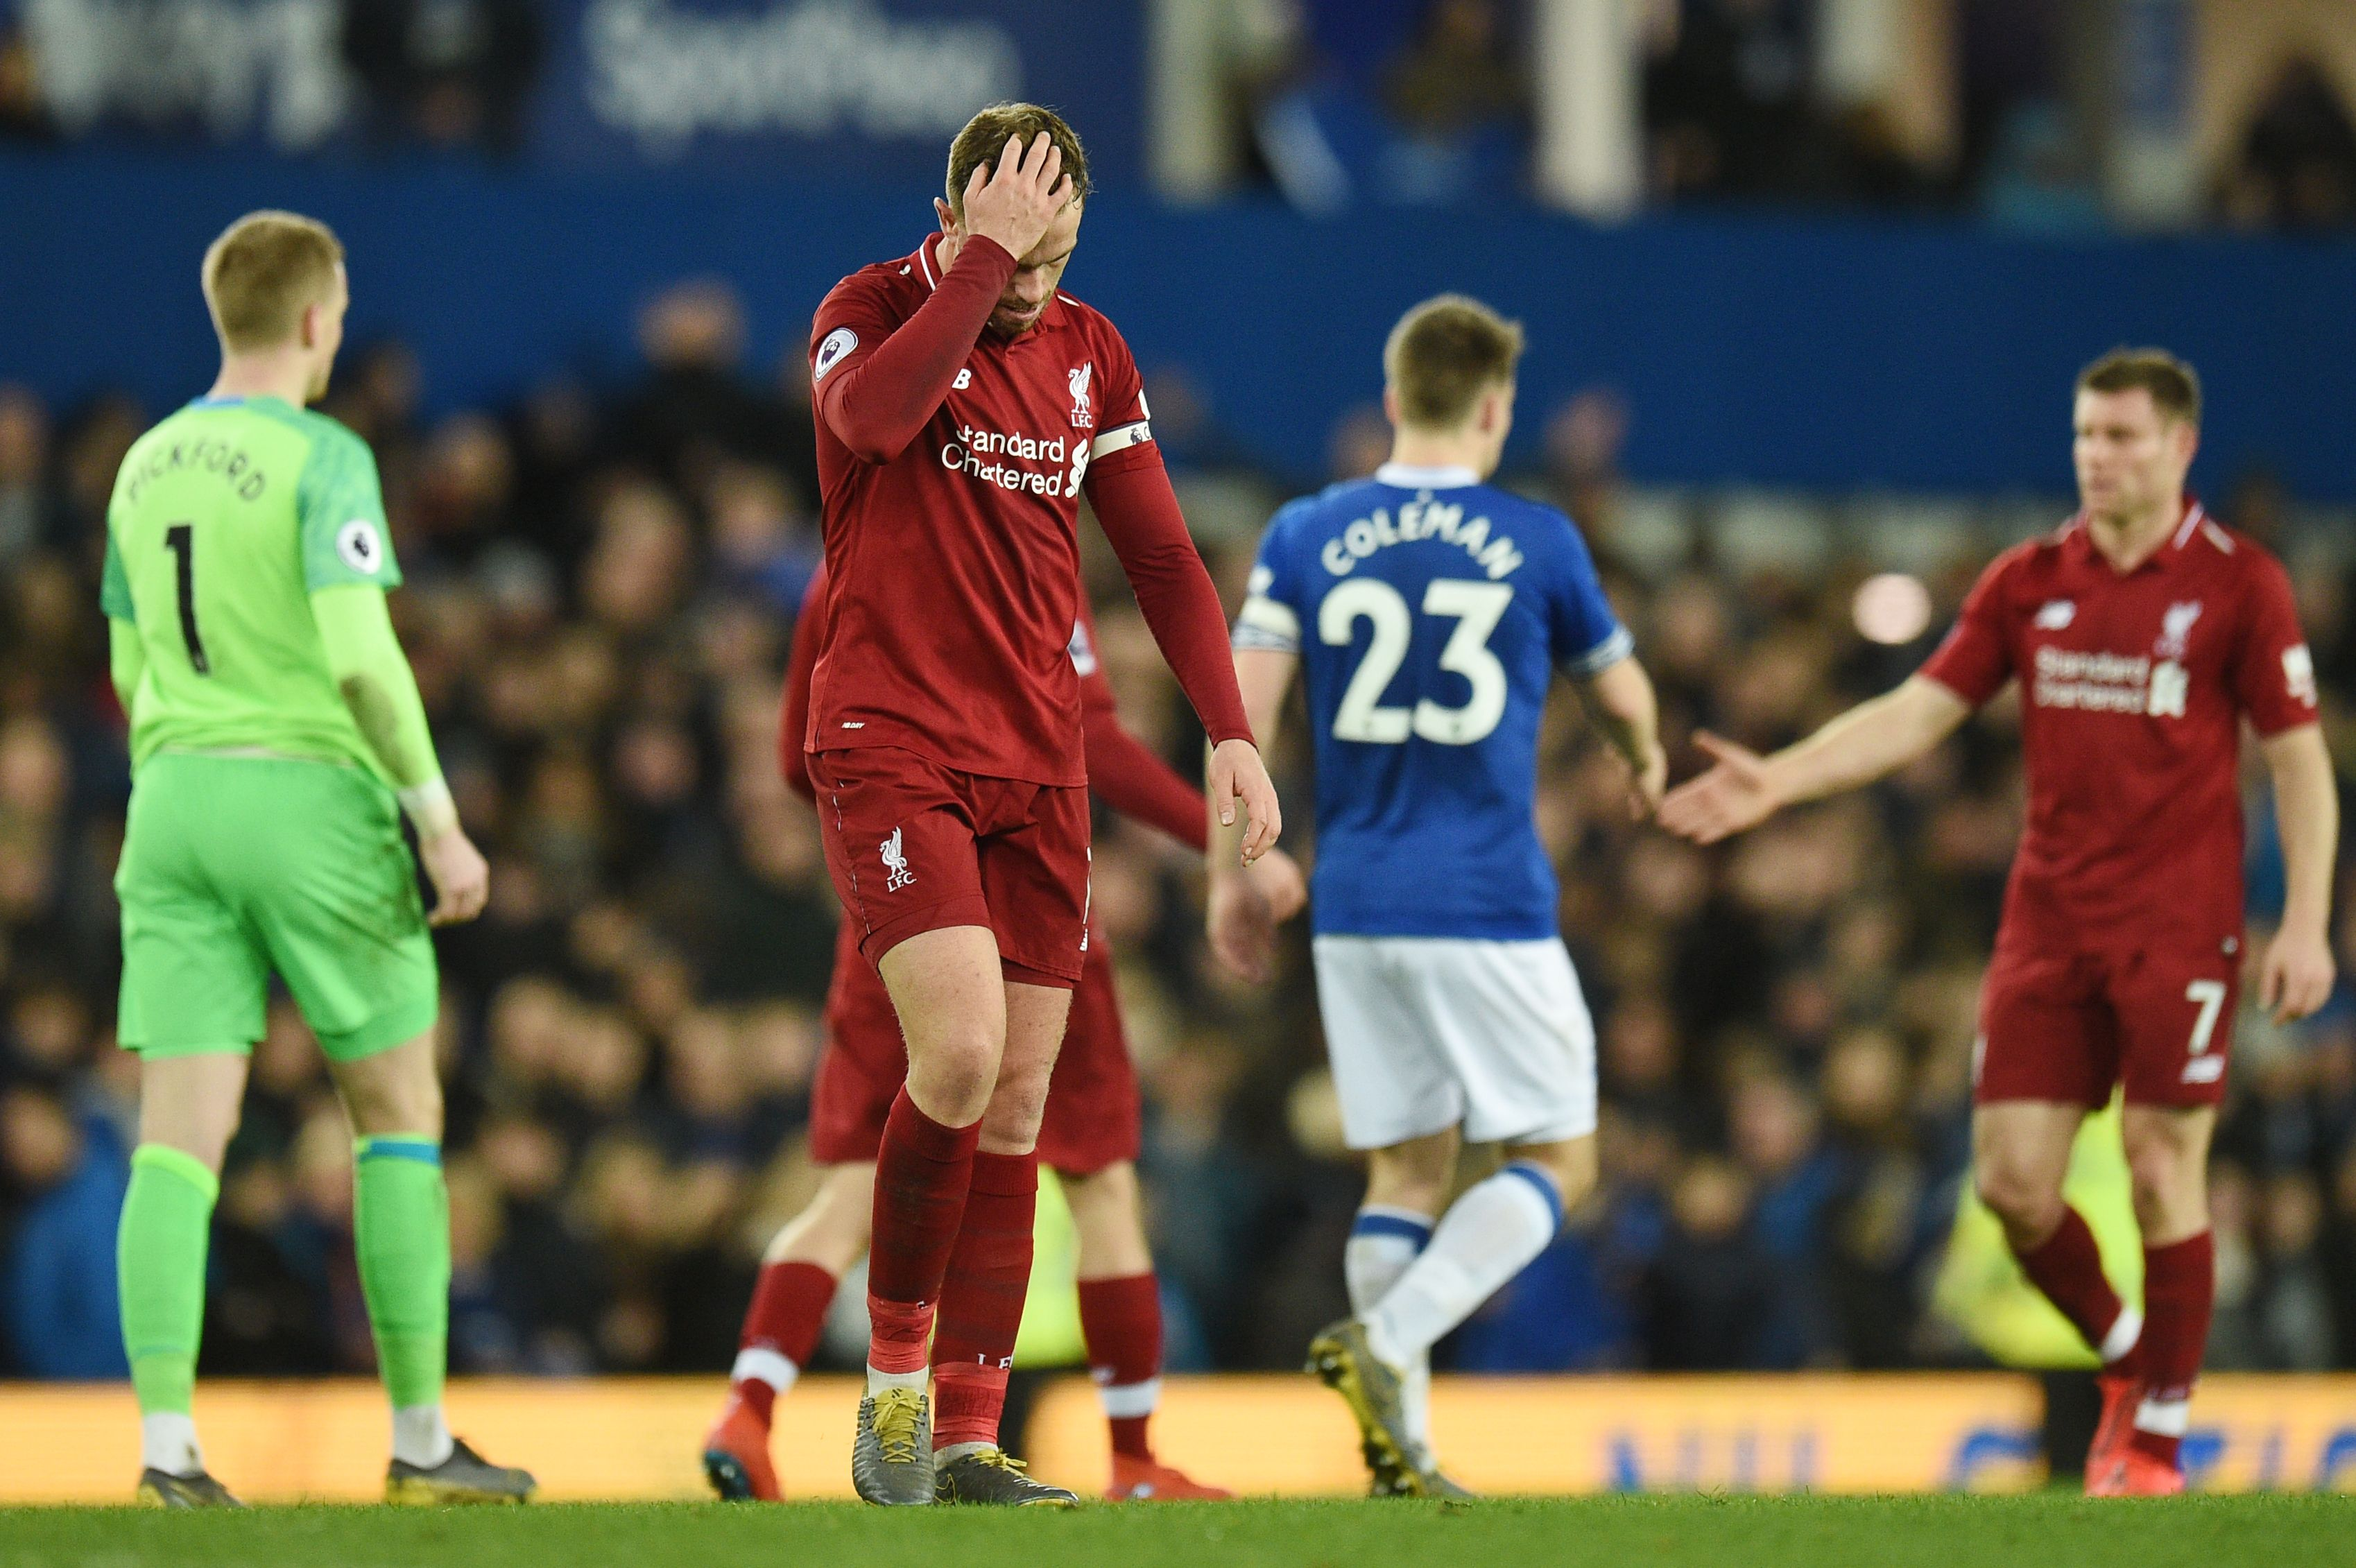 Everton Liverpool English Premier League 03/03/19